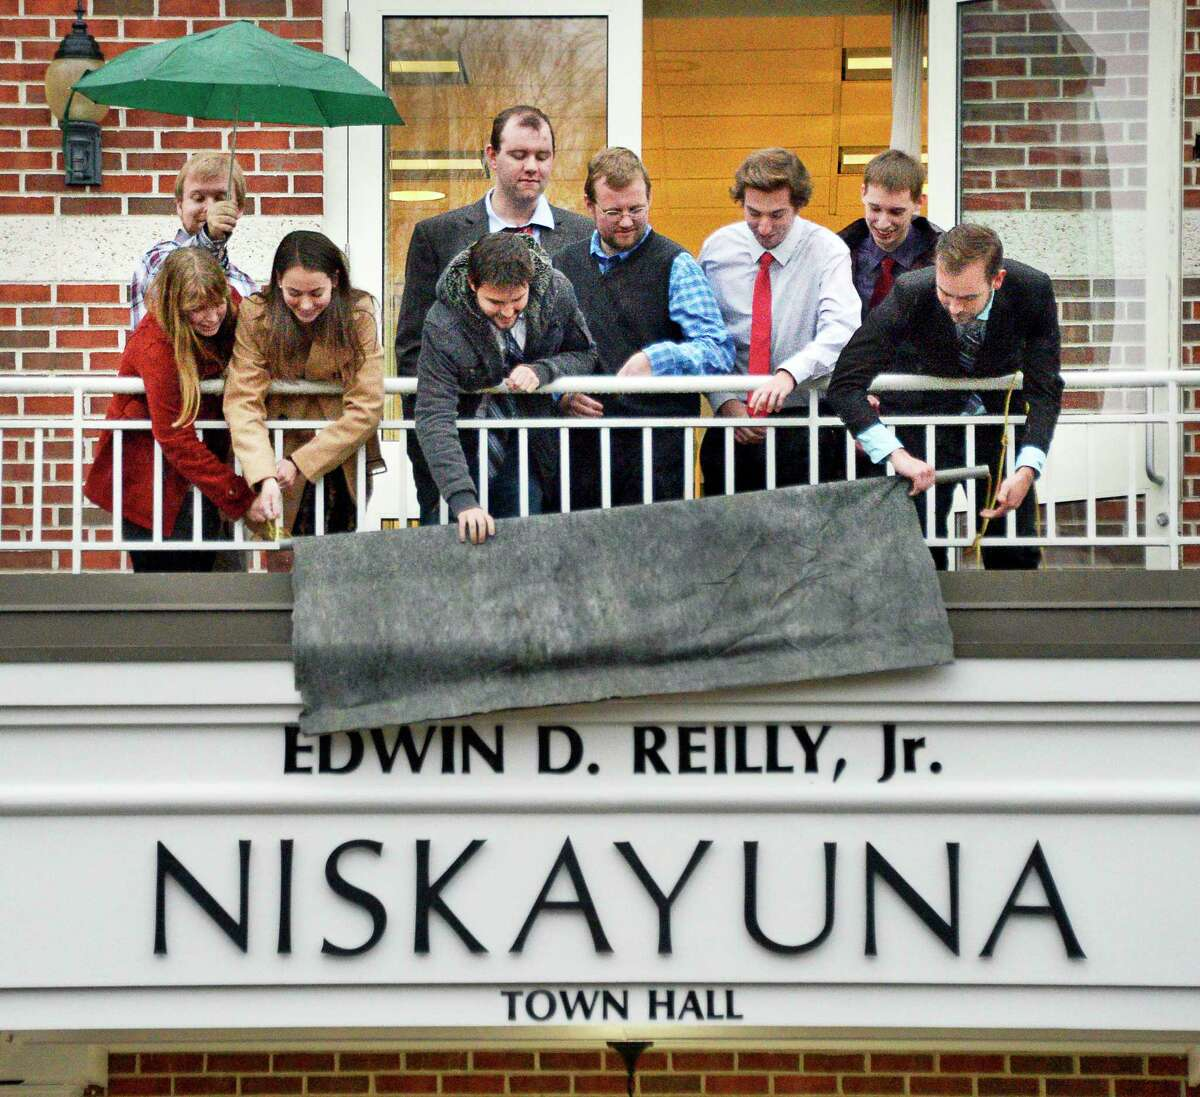 Grandchildren of former Supervisor Ed Reilly unveil the renaming of Niskayuna Town Hall in honor of their grandfather during a dedication ceremony Friday Nov. 9, 2018 in Niskayuna, NY. (John Carl D'Annibale/Times Union)